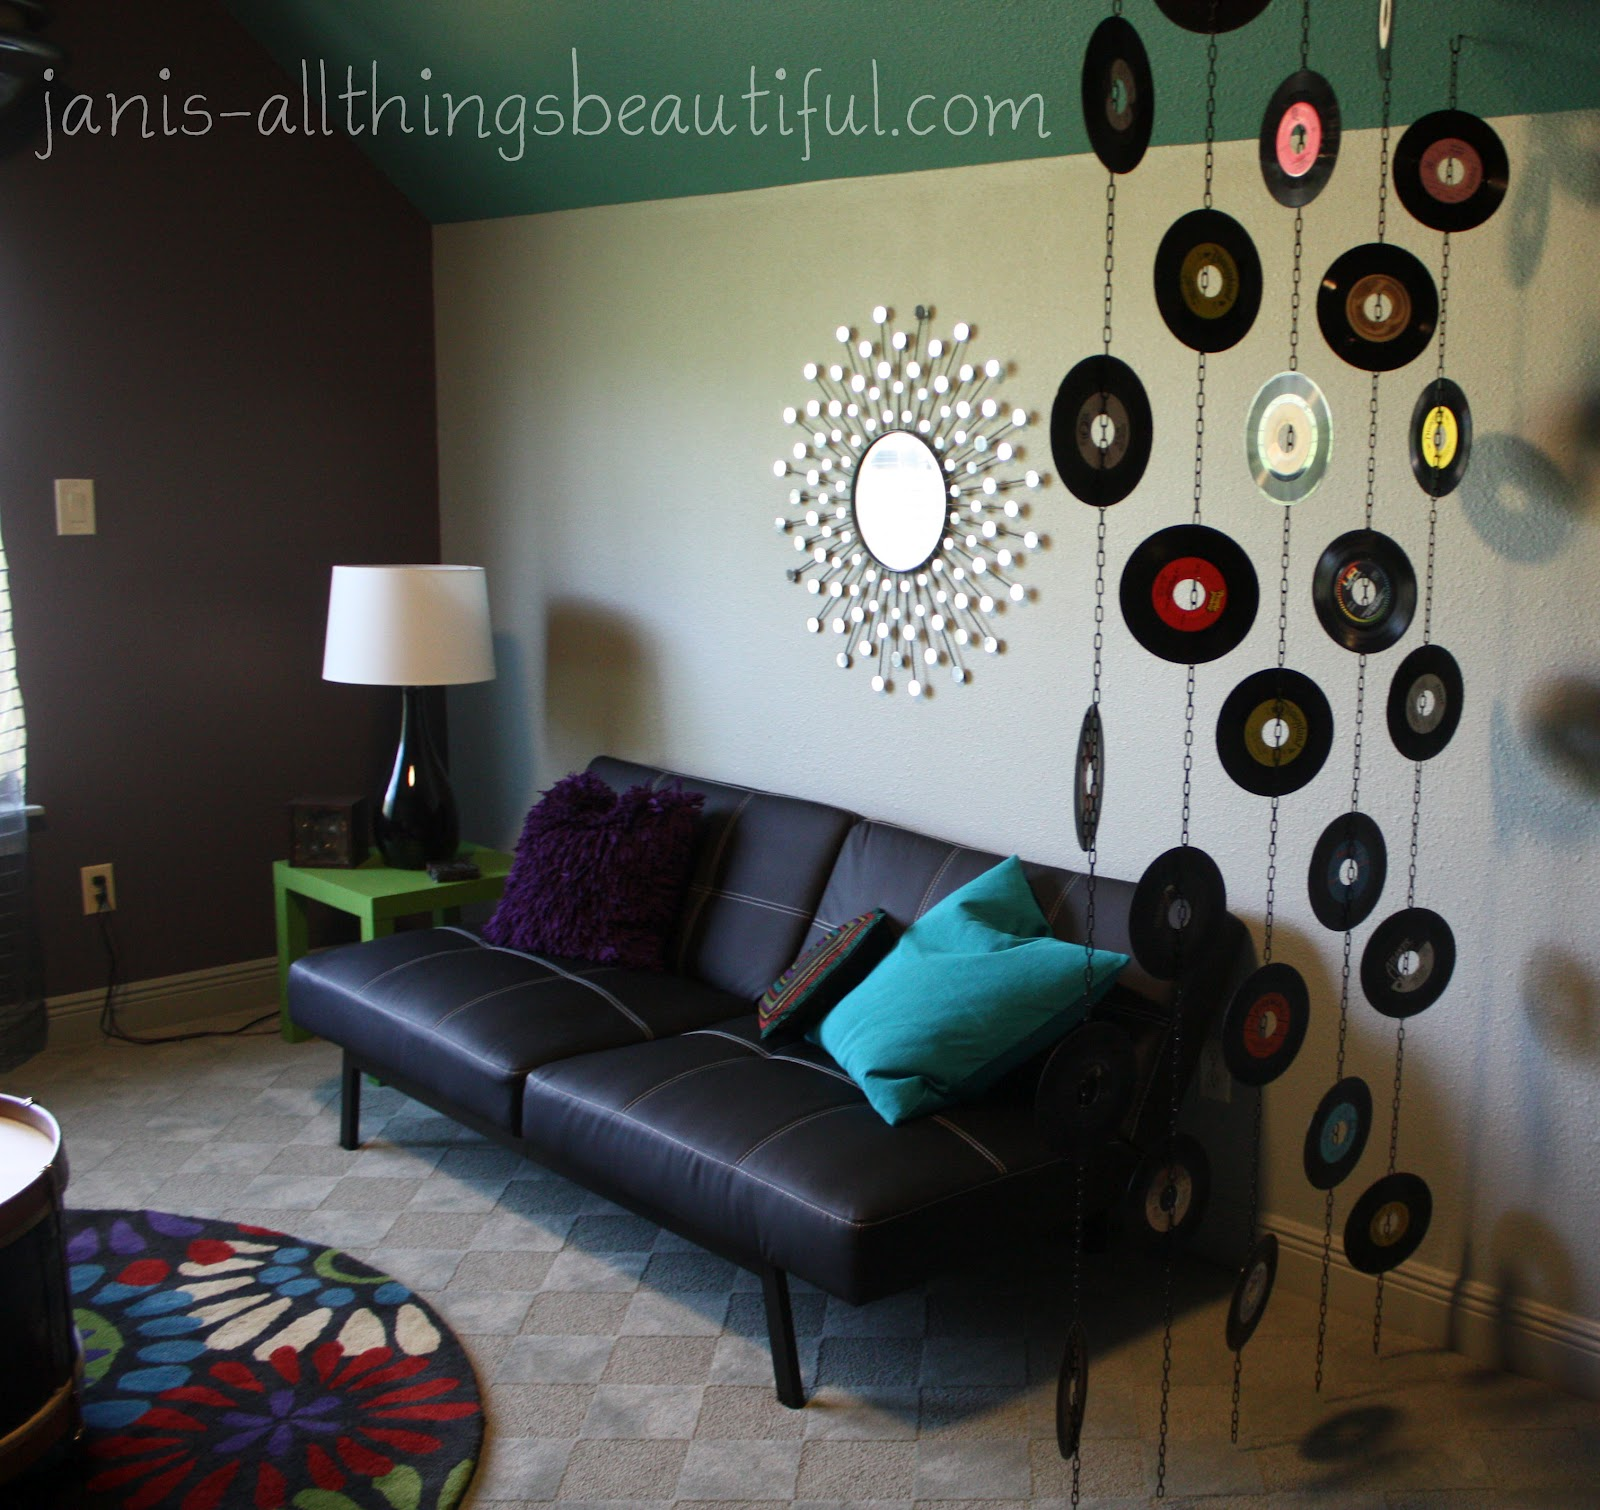 All things beautiful groovy pool room danceoff for Vinyl record decoration ideas